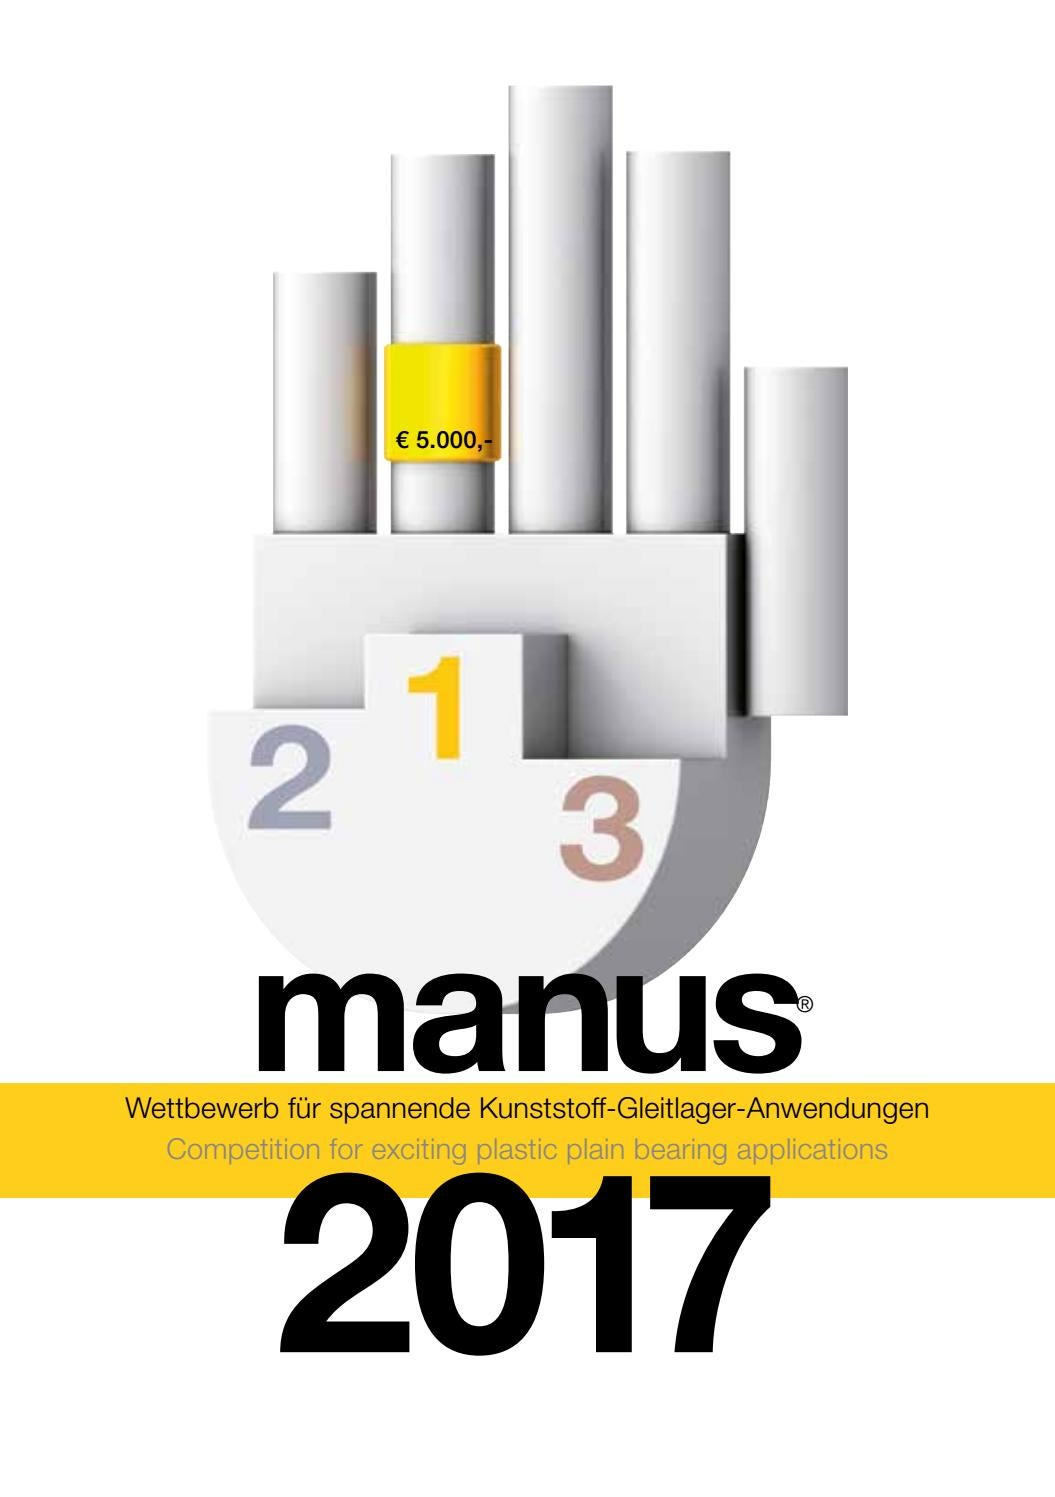 manus award 2017 by perey-medien - issuu